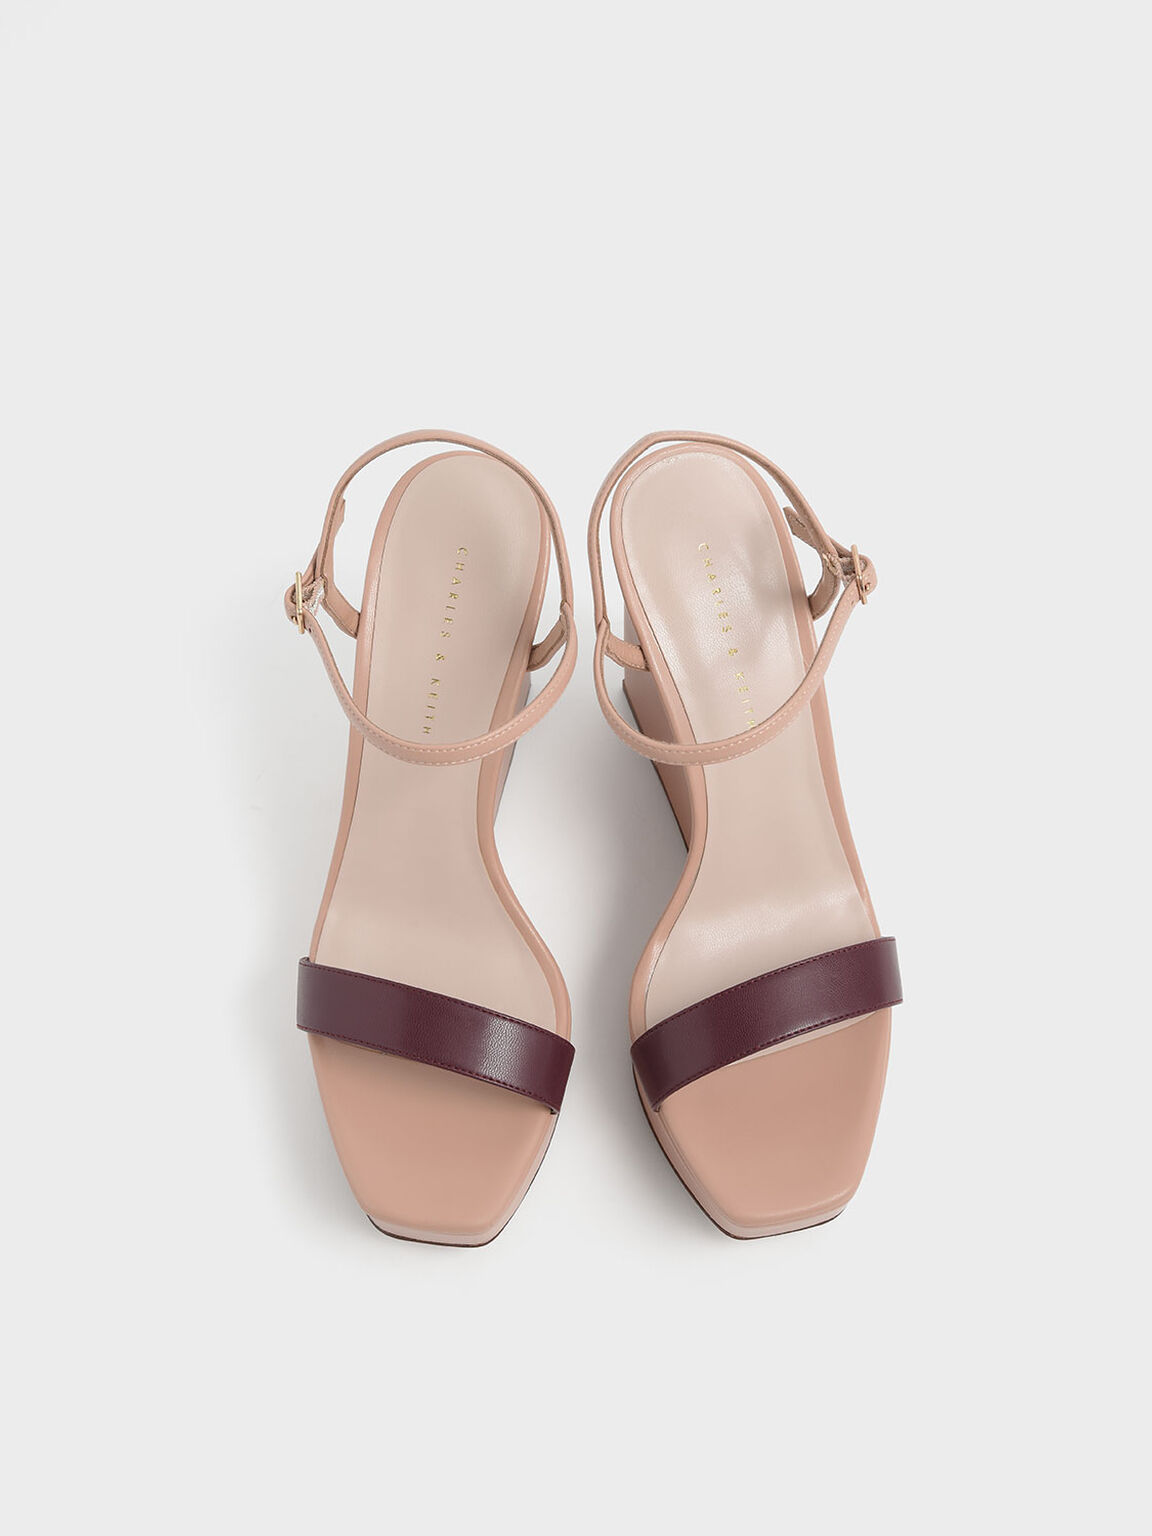 Two-Tone Square Toe Platform Wedges, Nude, hi-res